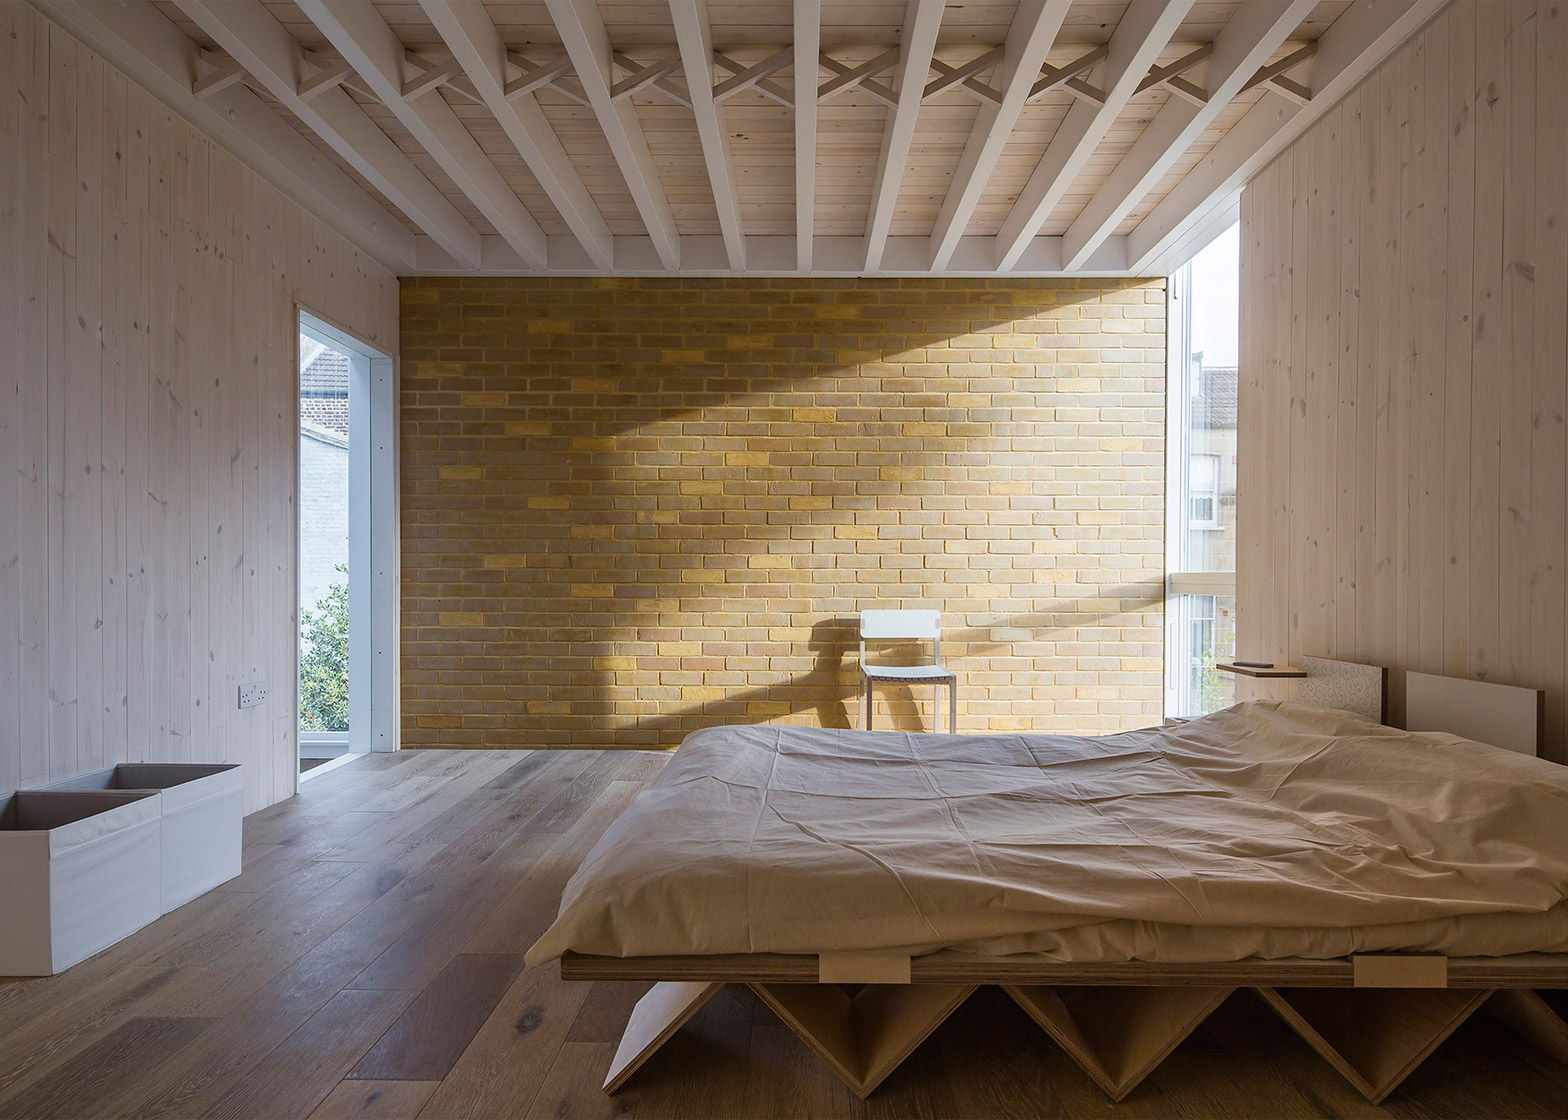 House of Trace by Tsuruta Architects. Photograph by Tim Croker